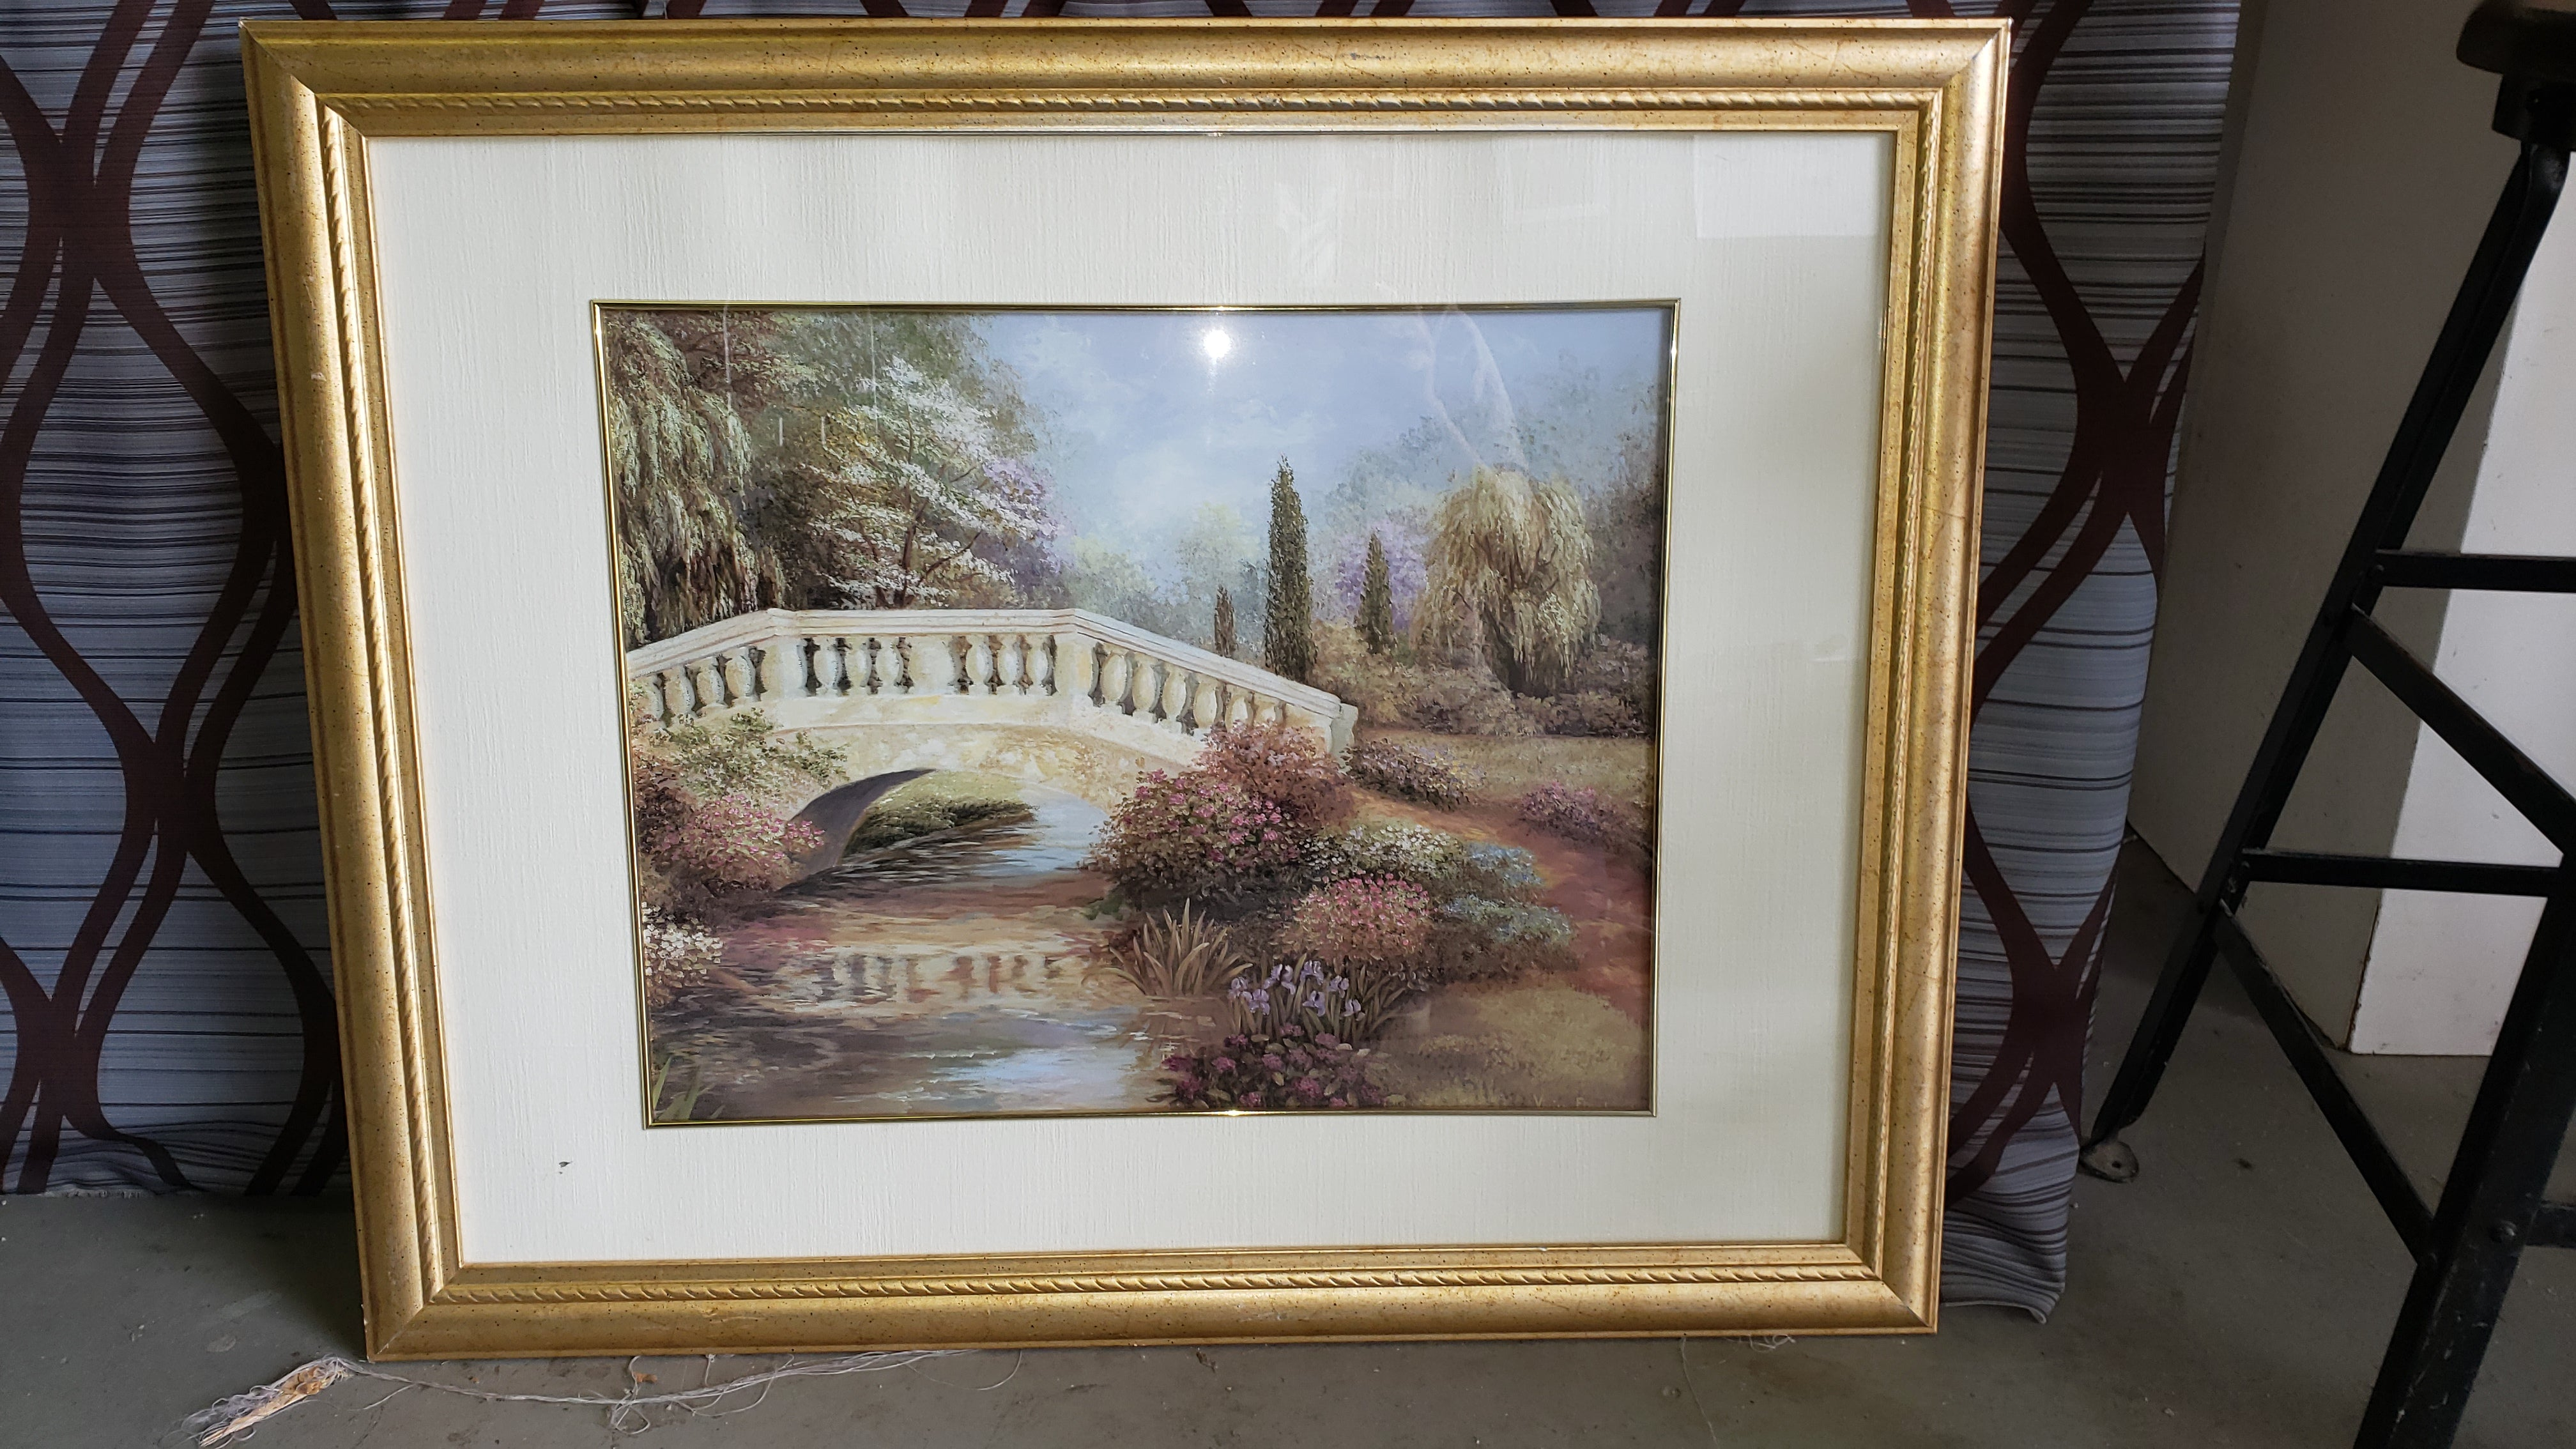 Framed and Matted Landscape Print - Macomb County ReStores